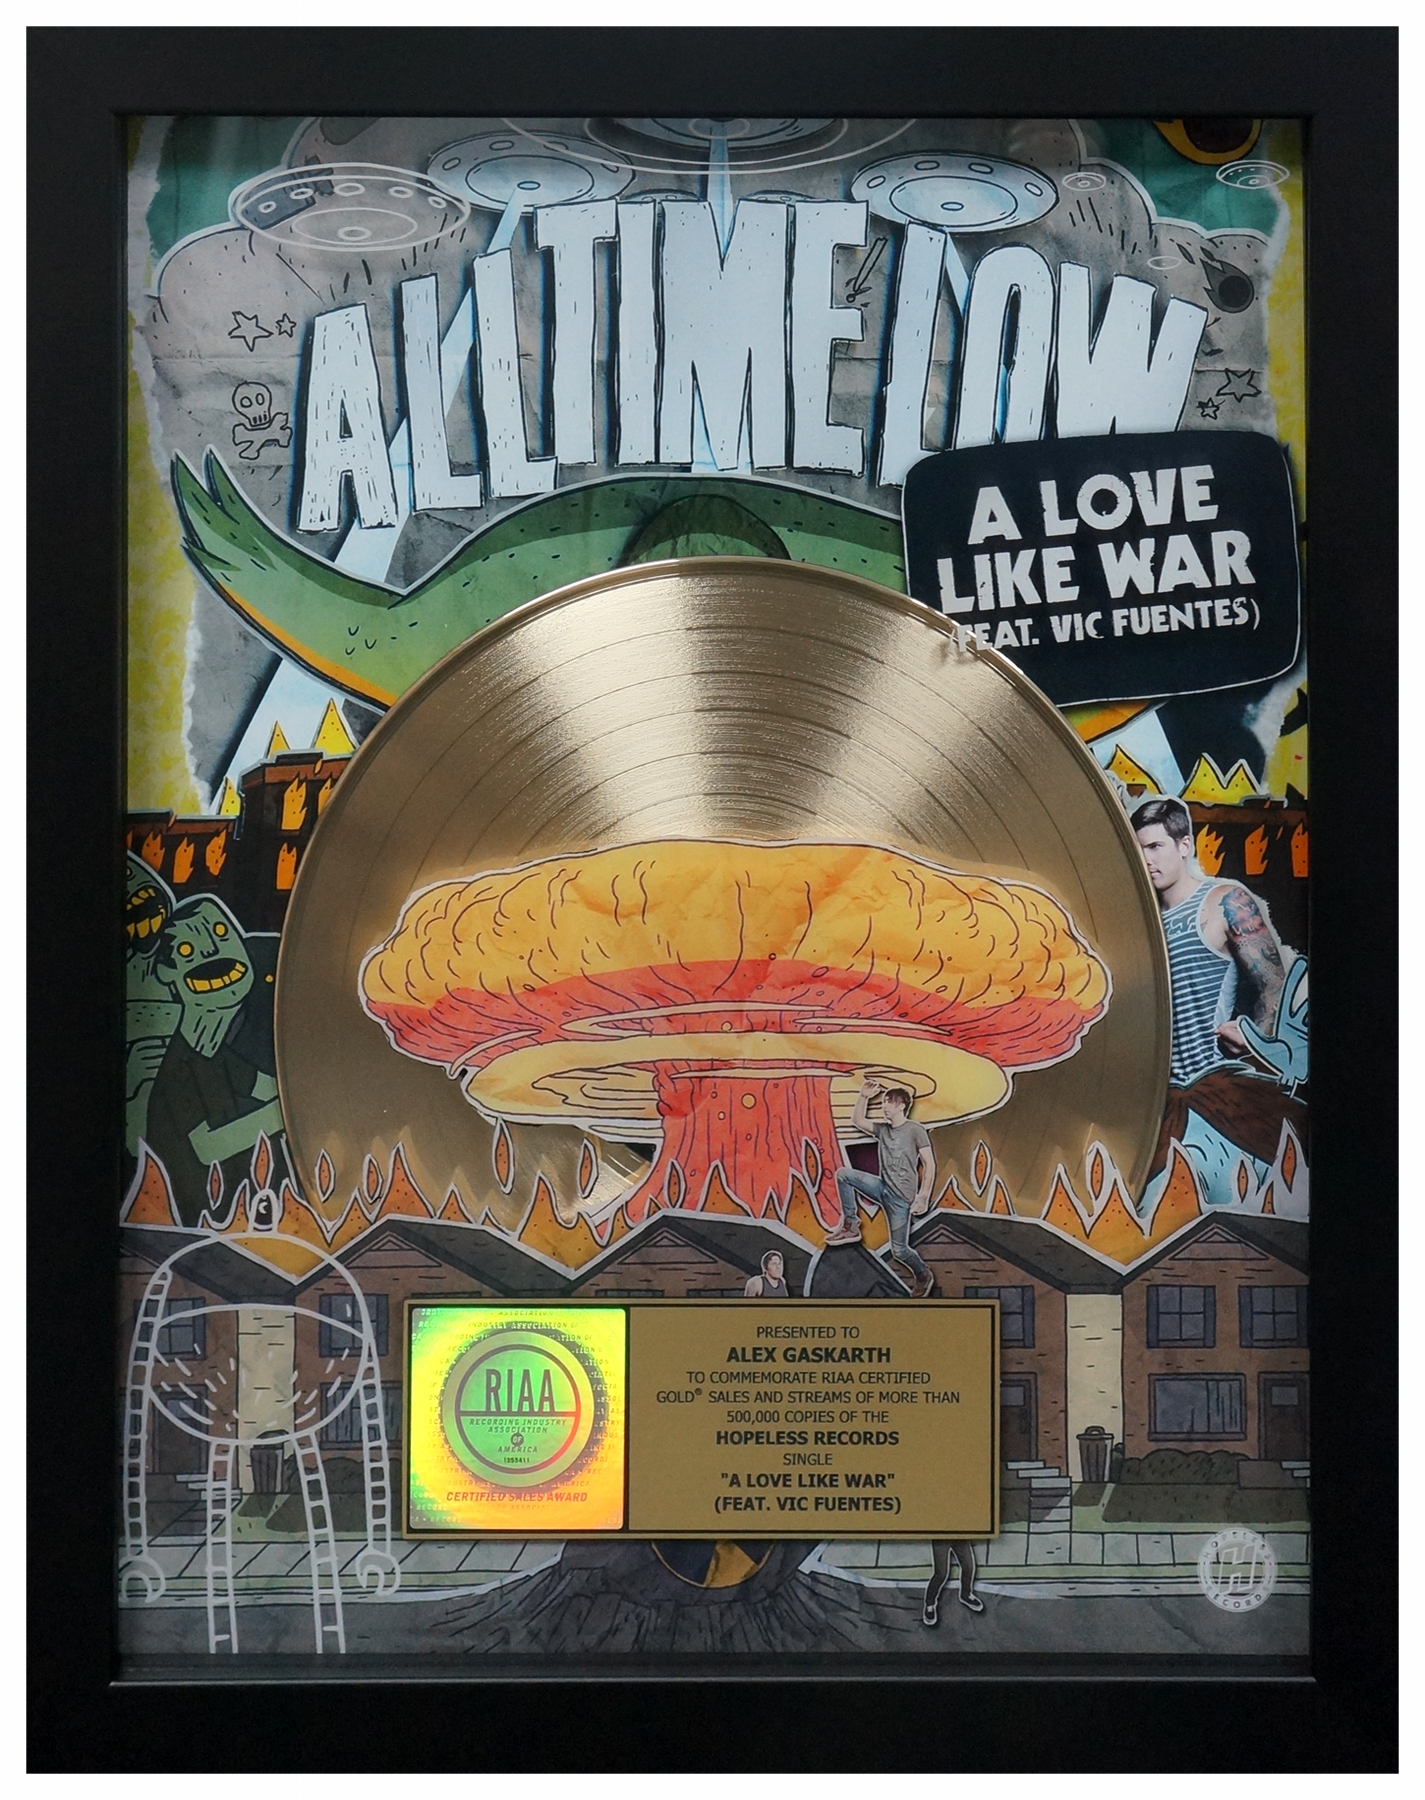 All Time Low plaque photo.jpg